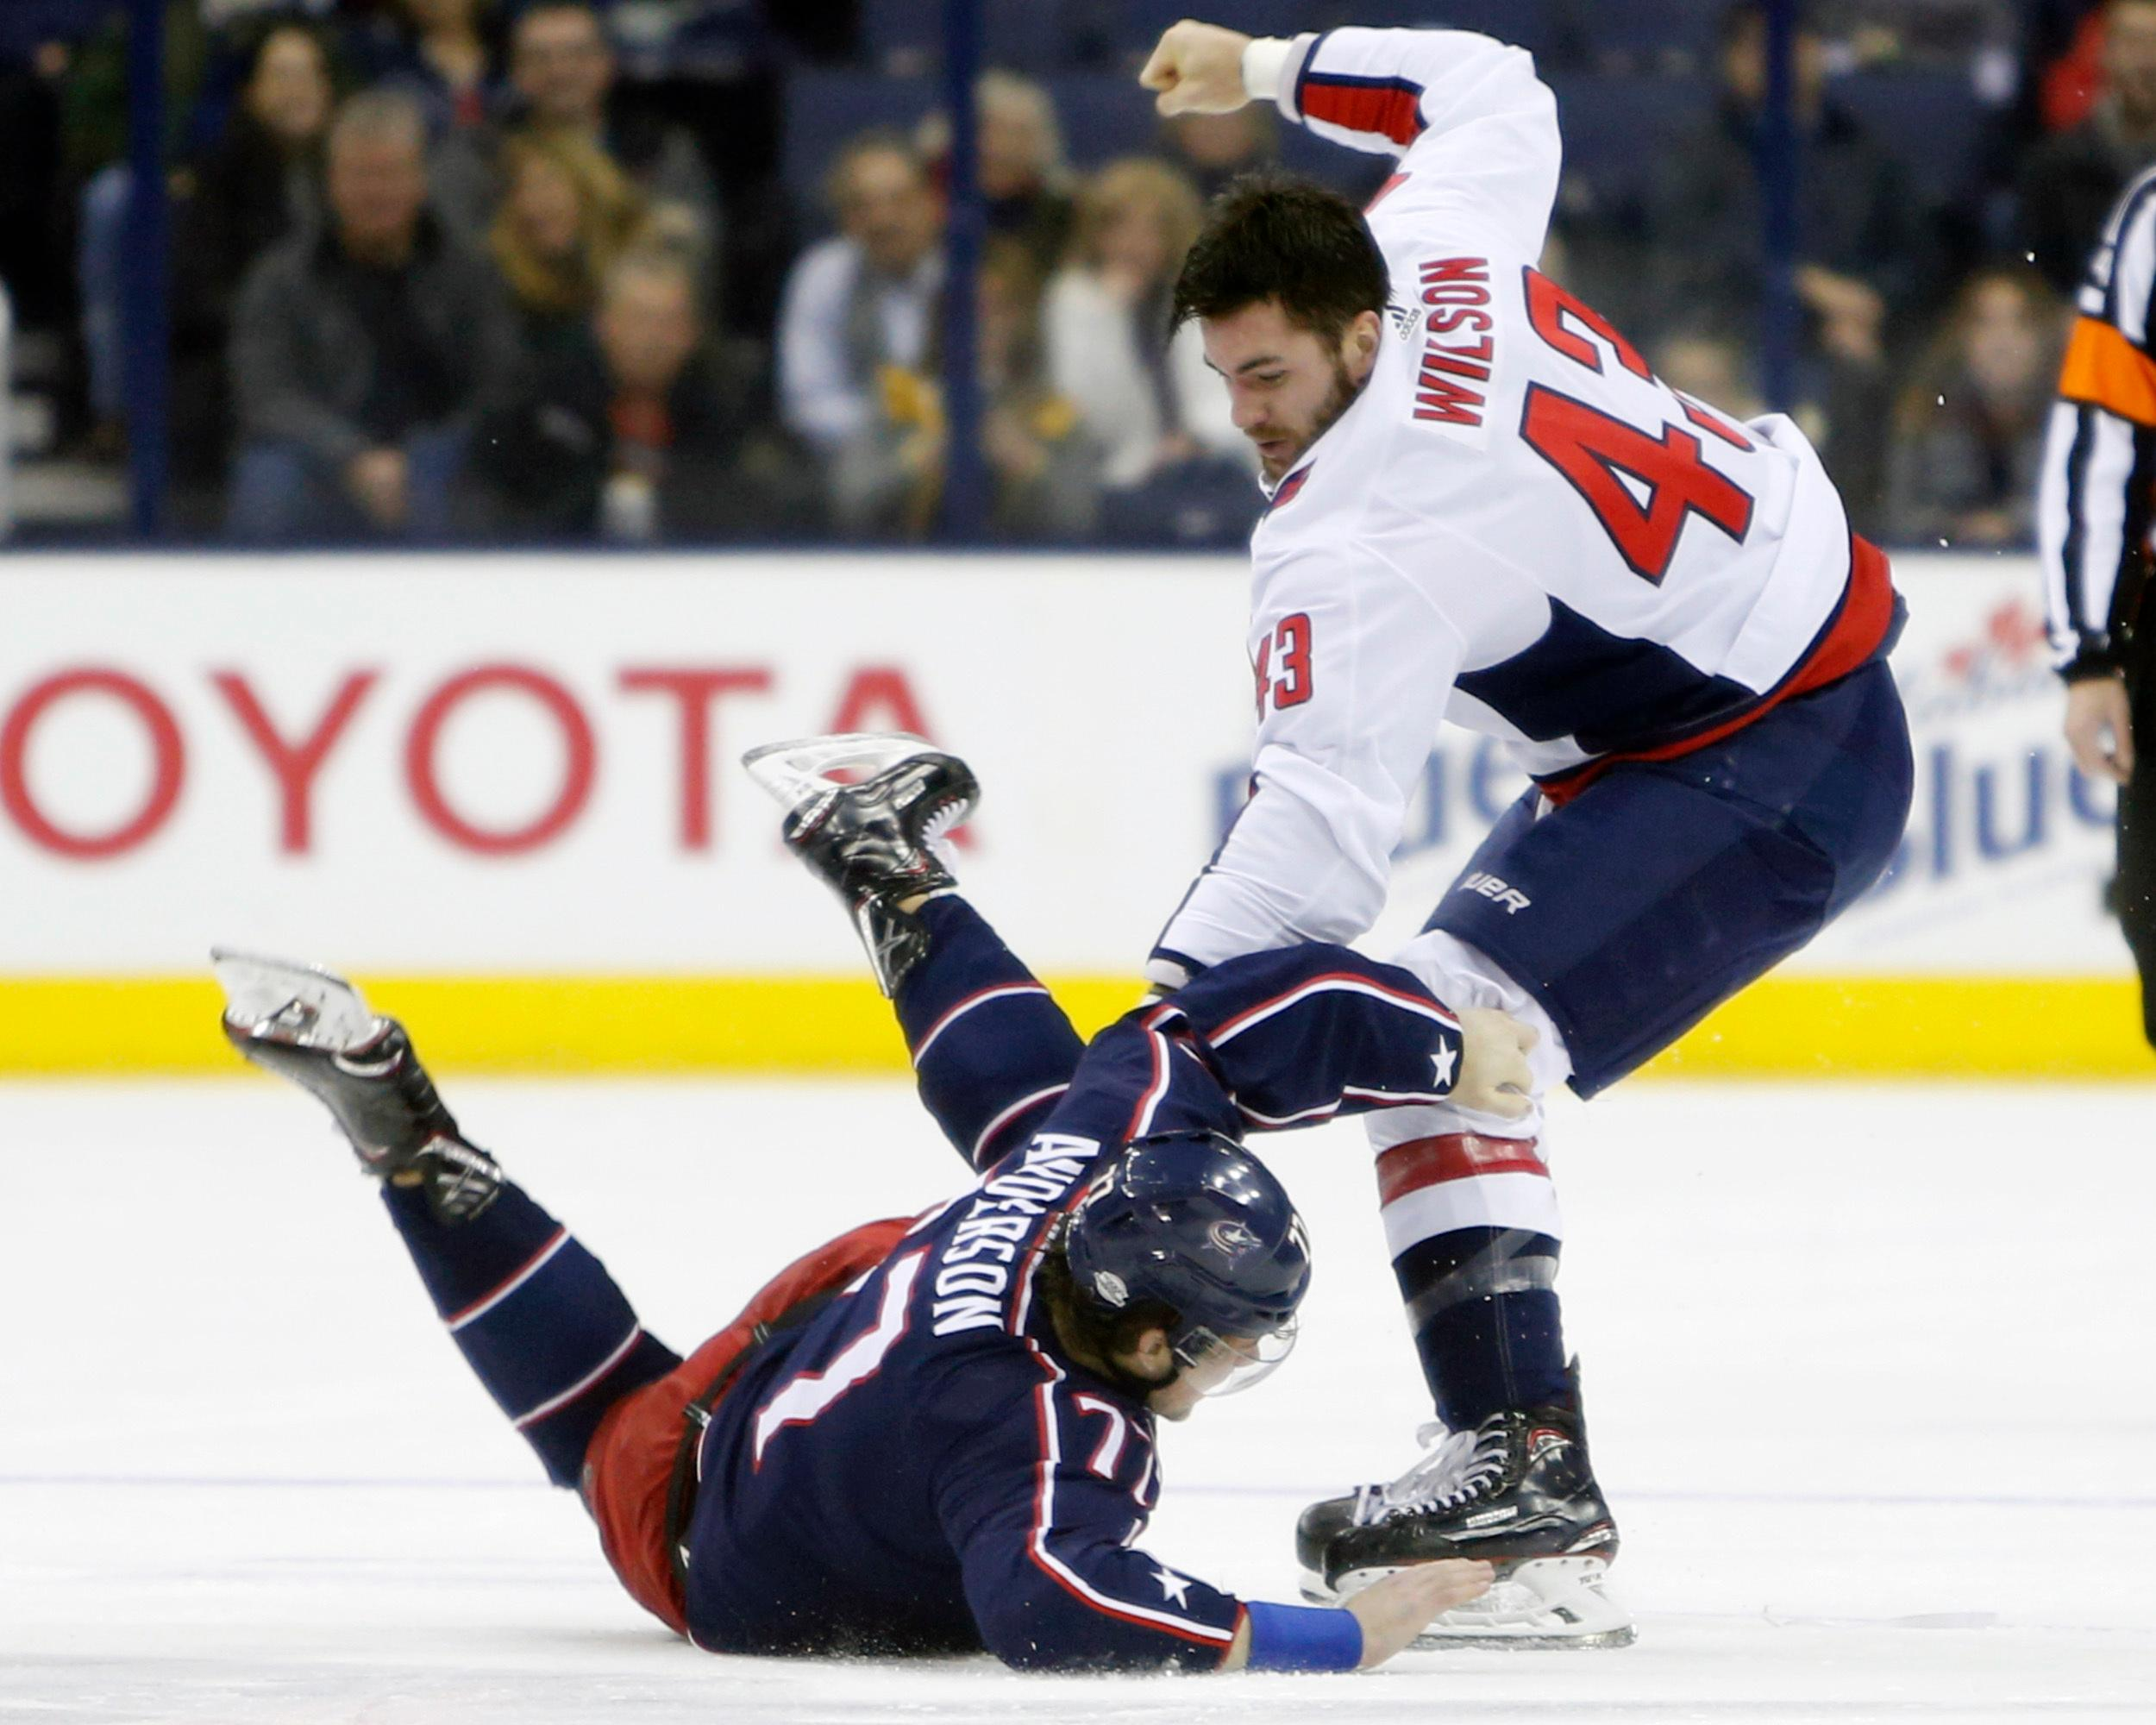 Washington Capitals' Tom Wilson, top, knocks Columbus Blue Jackets' Josh Anderson to the ice during the first period of an NHL hockey game Tuesday, Feb. 6, 2018, in Columbus, Ohio. (AP Photo/Jay LaPrete)